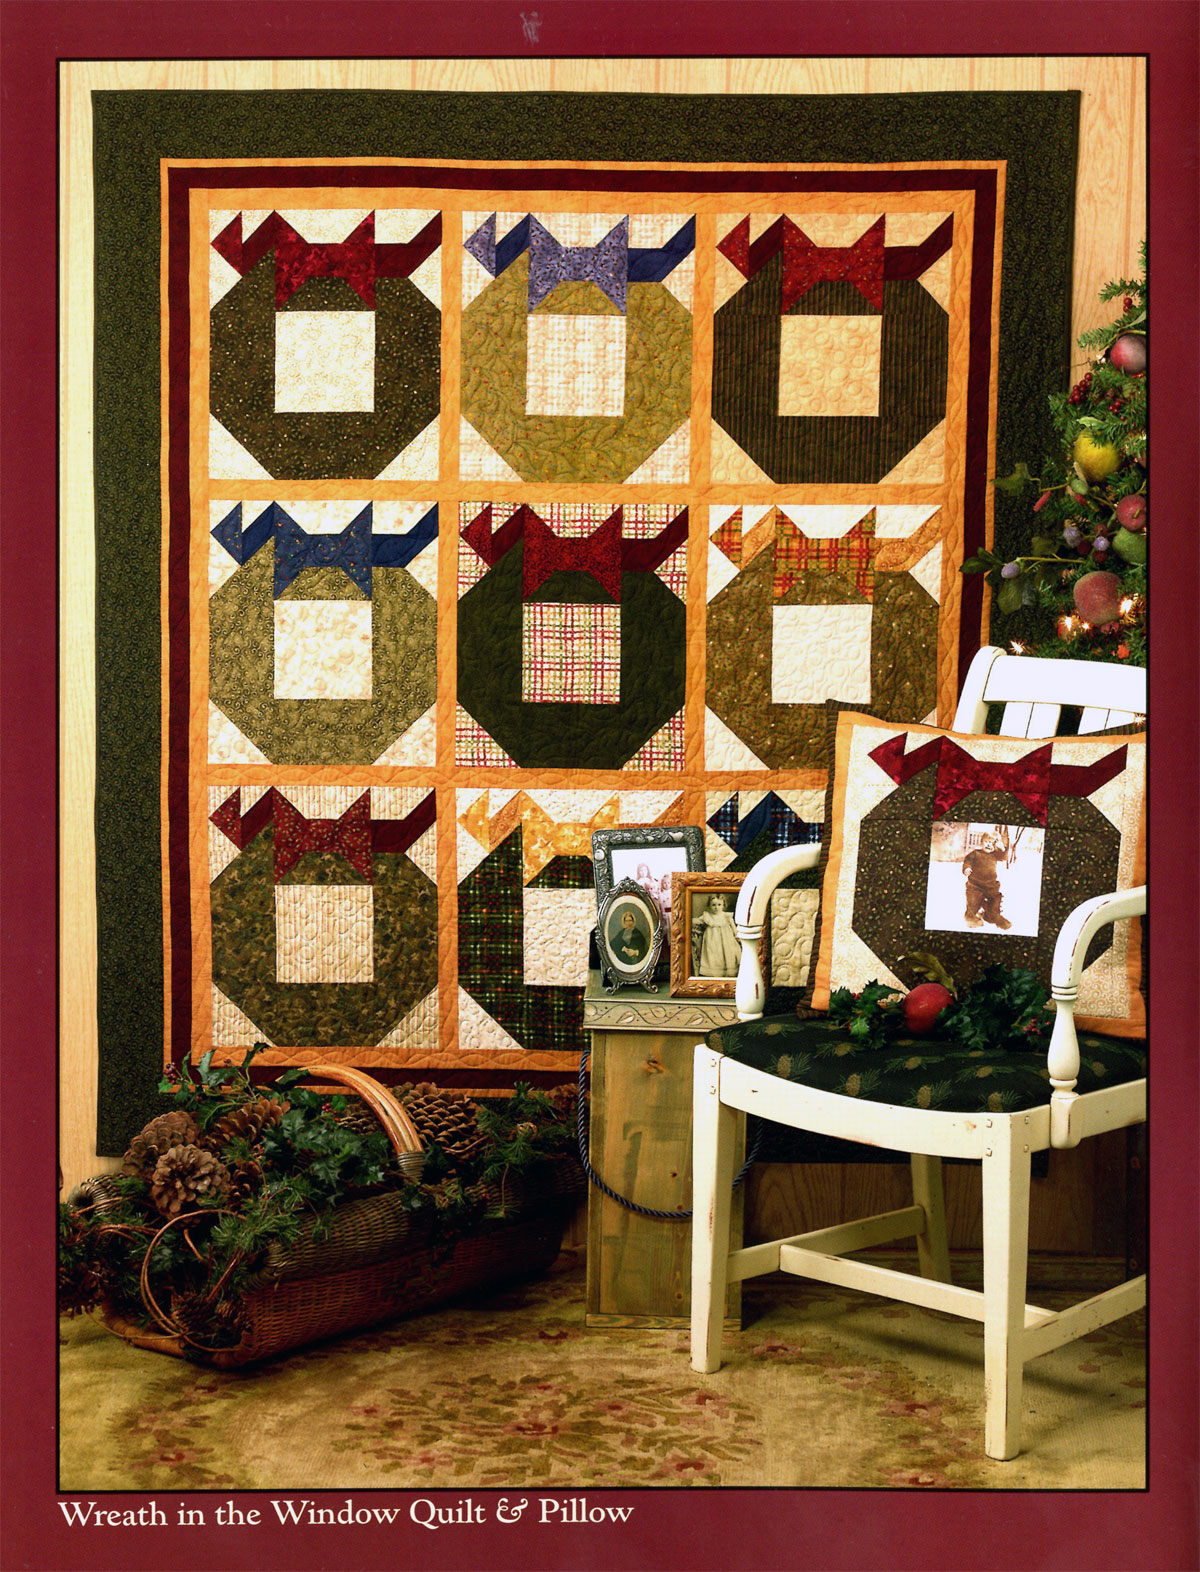 Happy-Holidays-to-You-sewing-pattern-book-Art-To-Heart-2